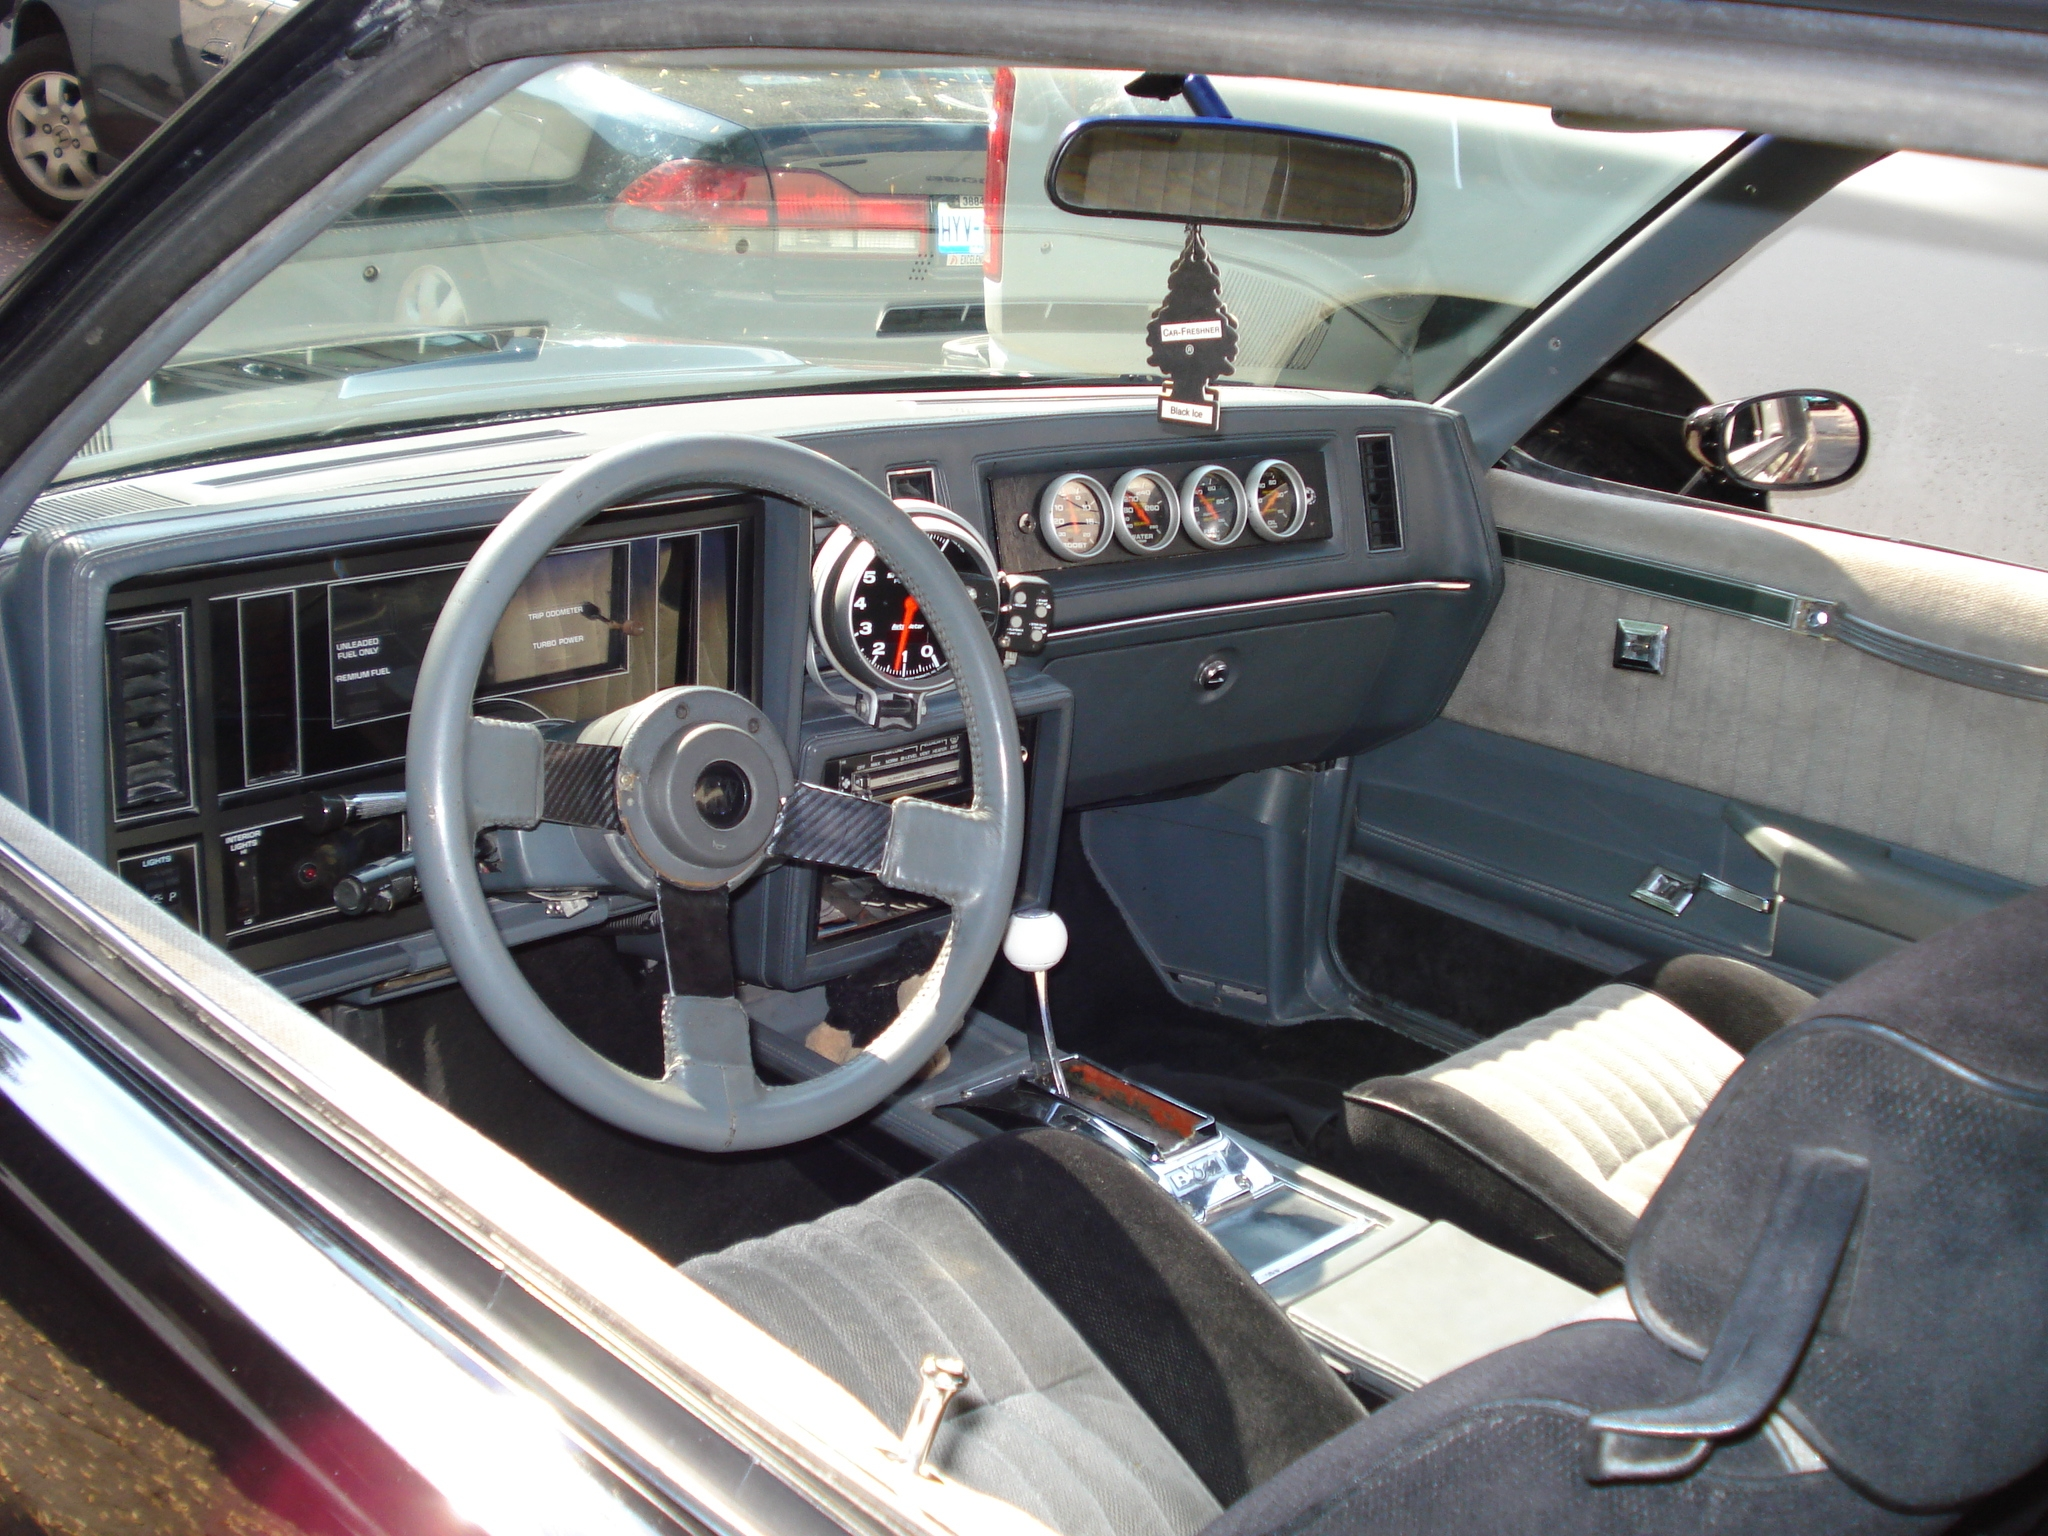 lostems5100's 1987 Buick Grand National